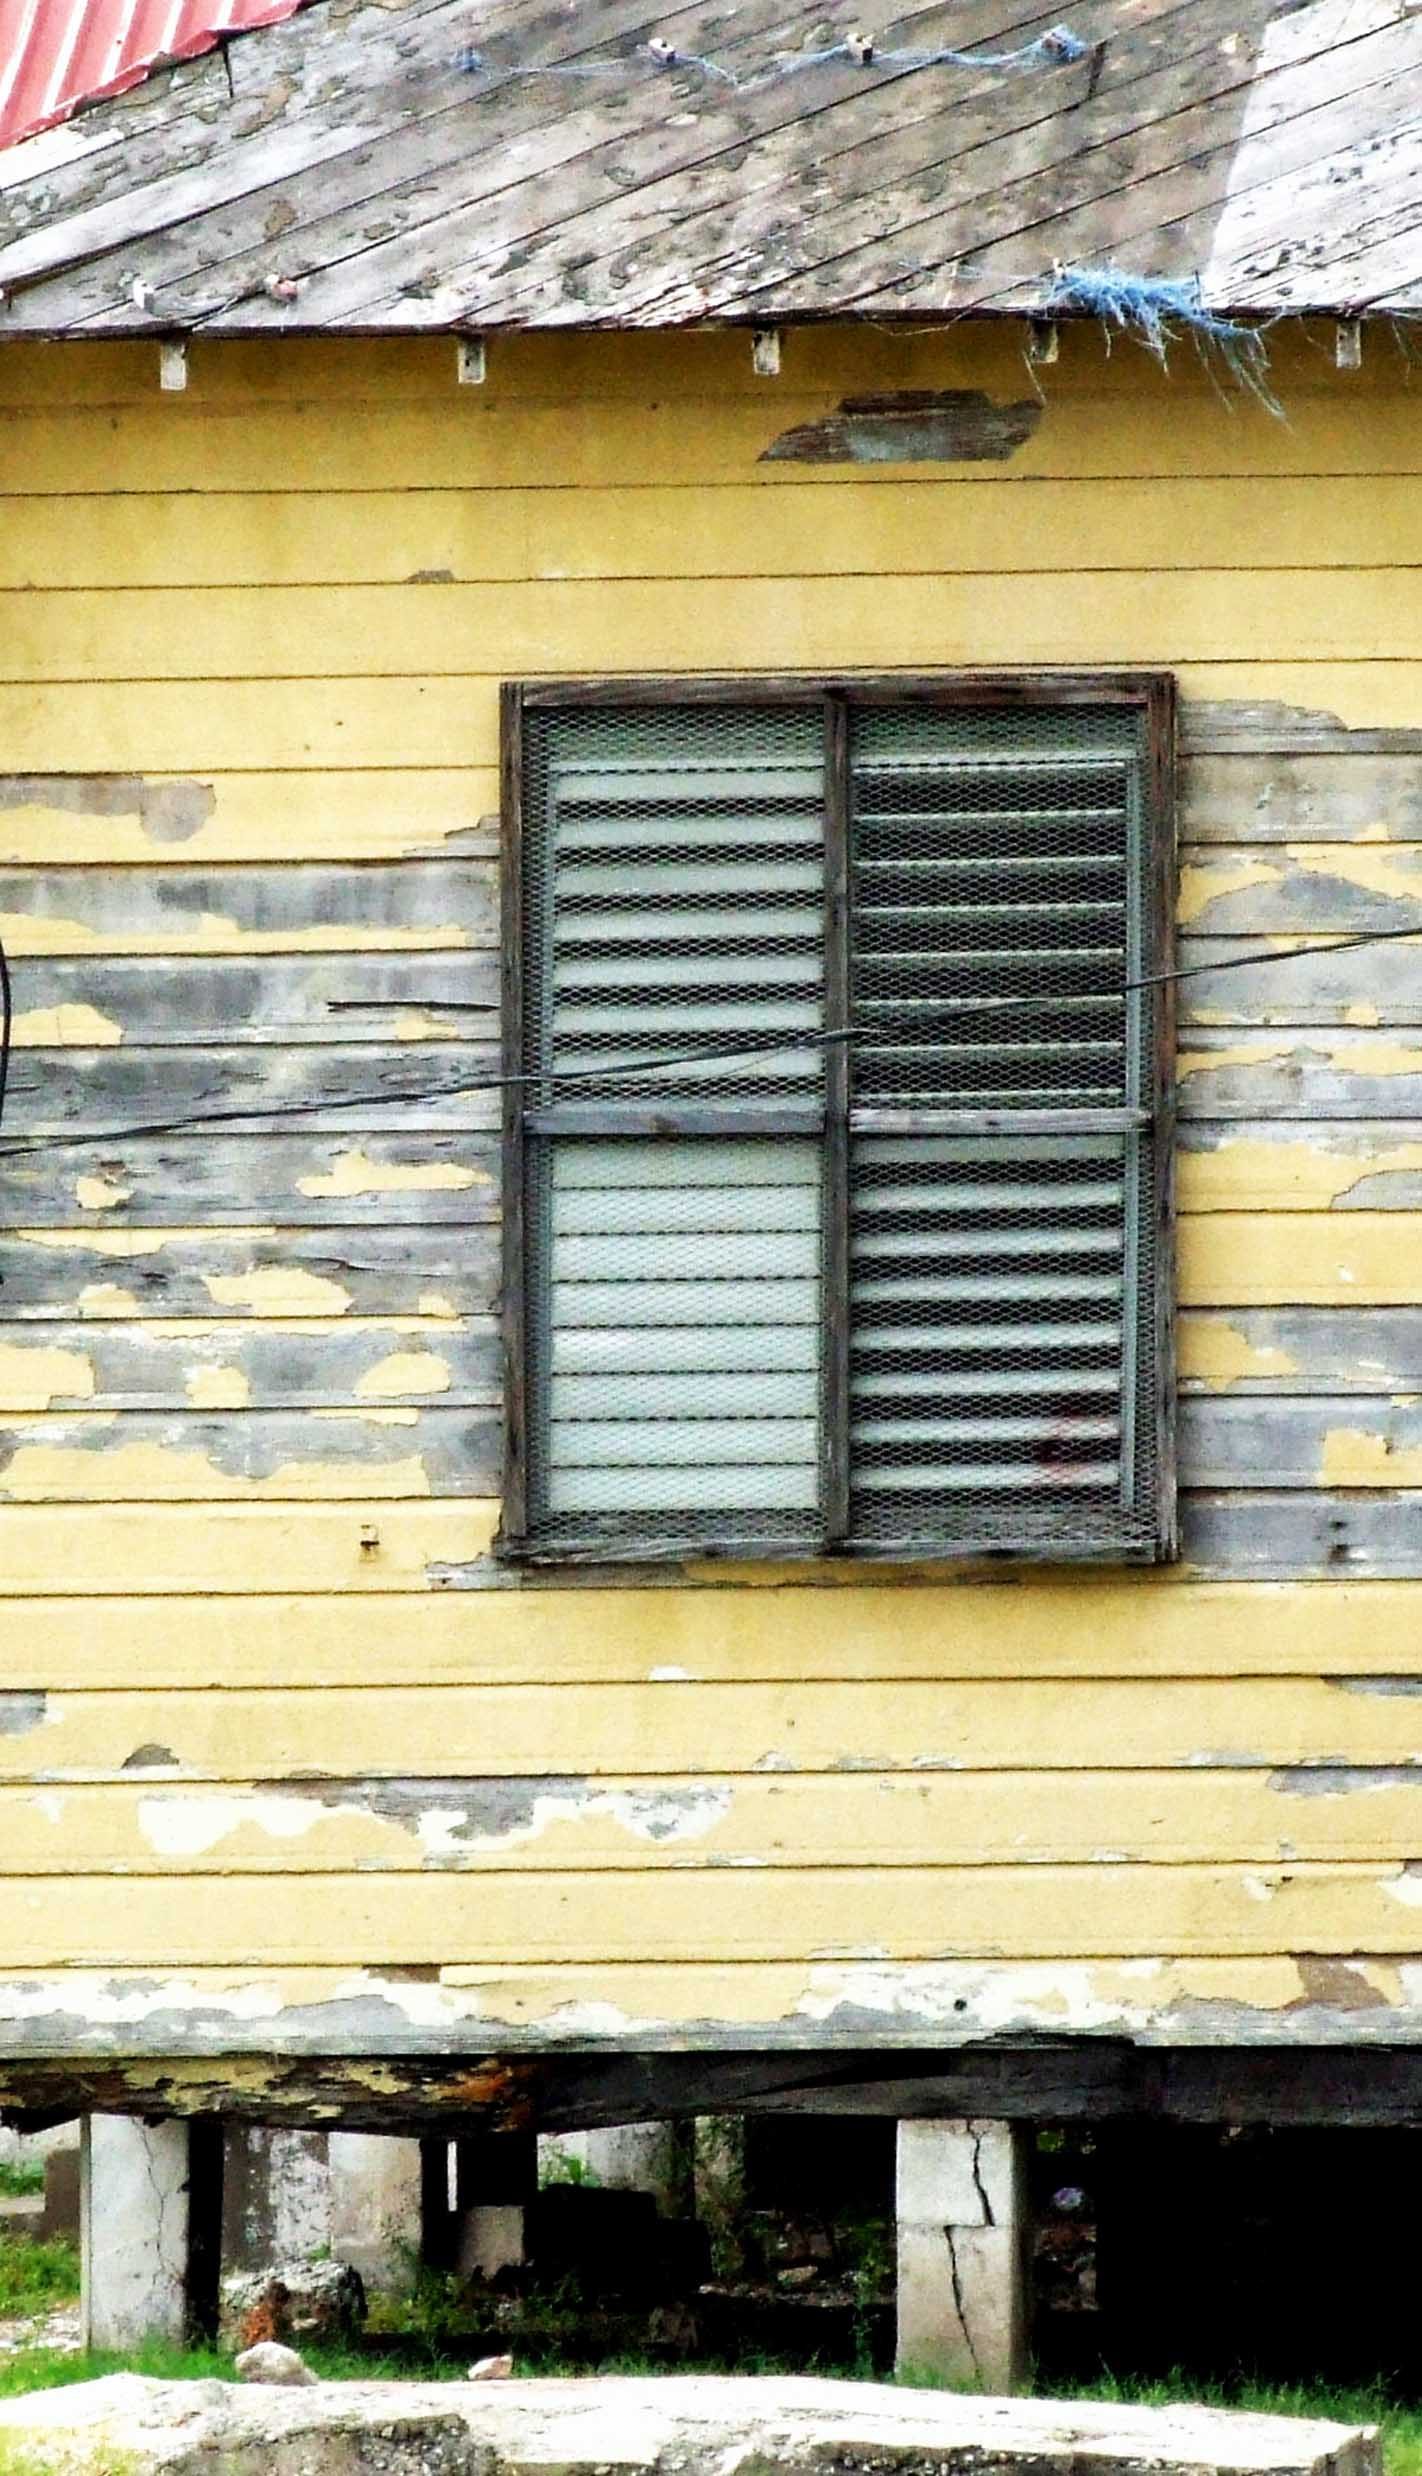 Tumbledown wooden building with shutter